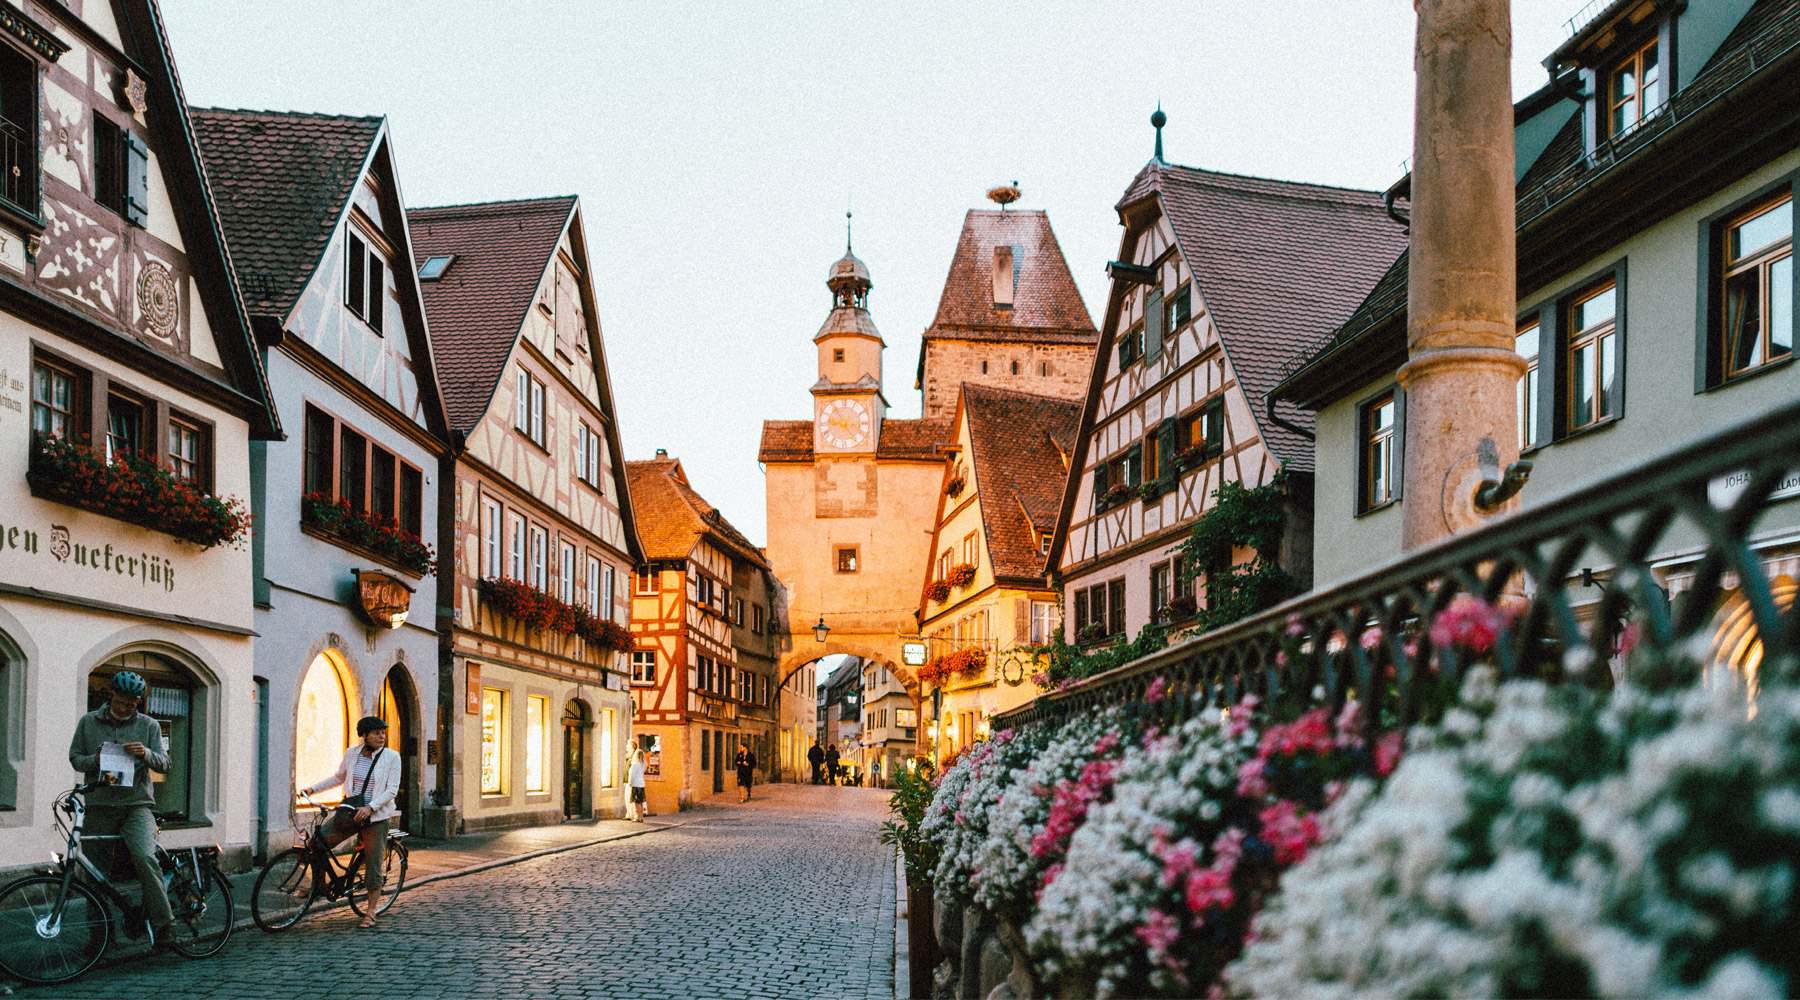 Rothenburg ob der Tauber, Germany – Things to Do